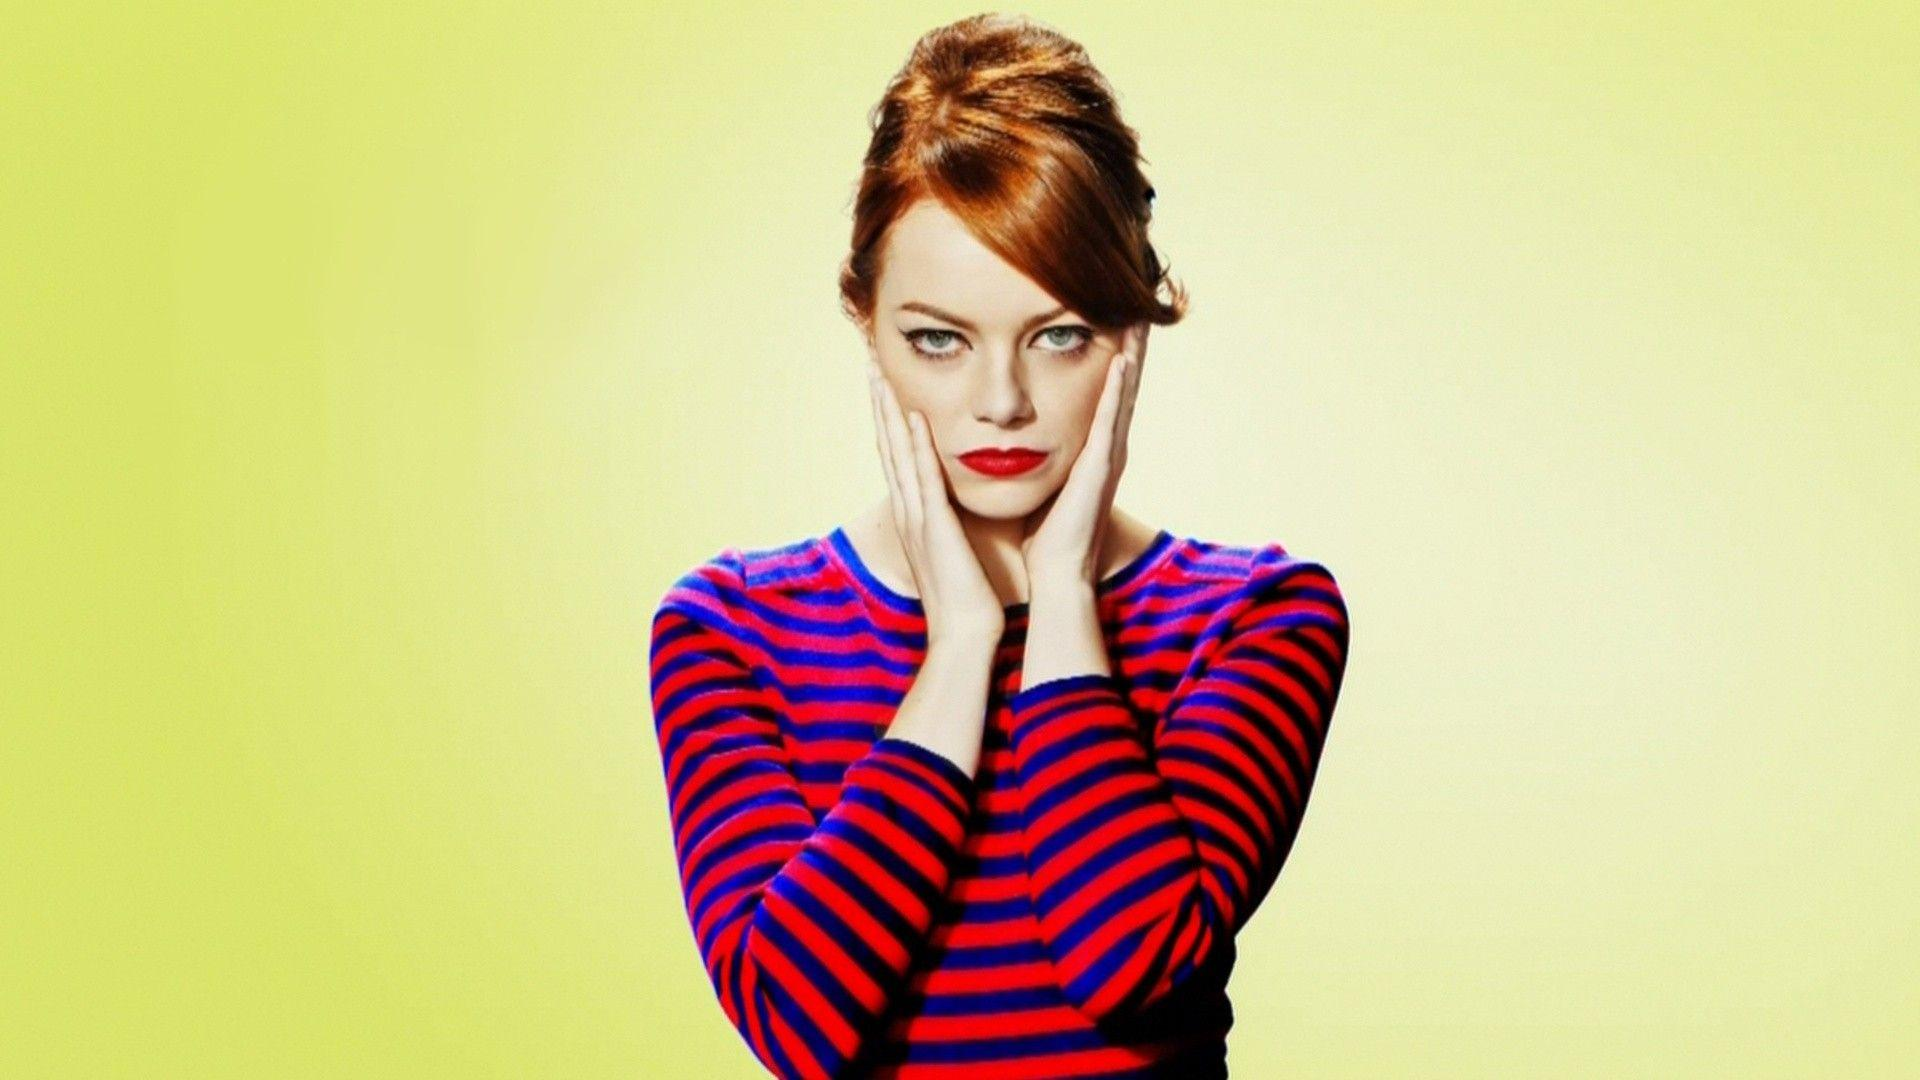 Emma Stone Hd Wallpapers | Wallpapers Top 10